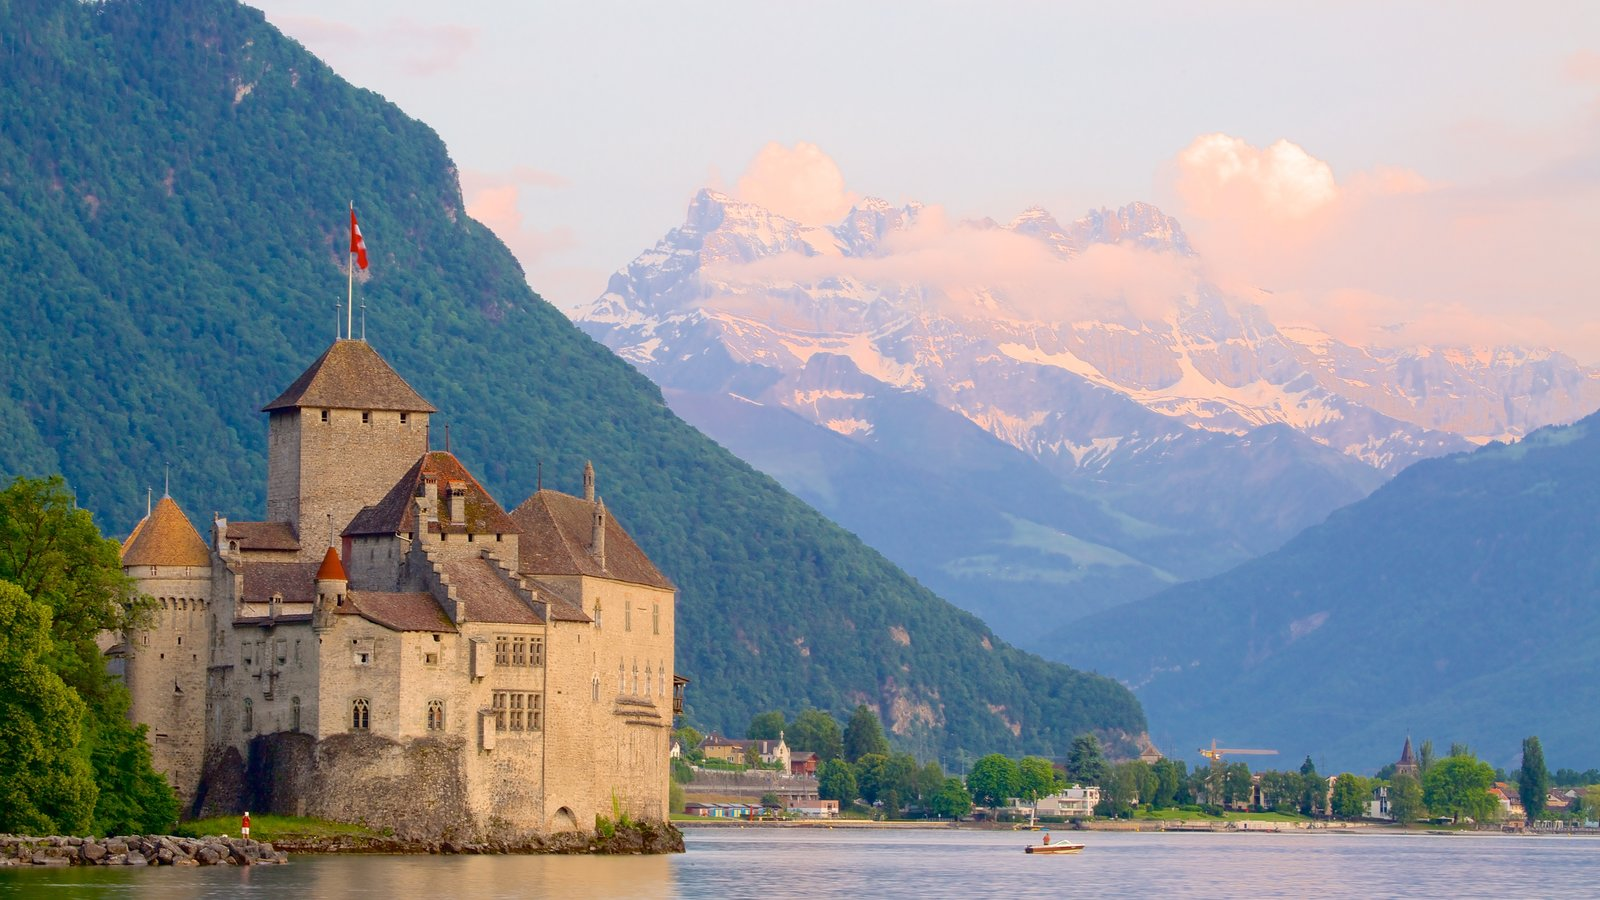 https://a.travel-assets.com/findyours-php/viewfinder/images/res60/81000/81855-Chateau-De-Chillon.jpg